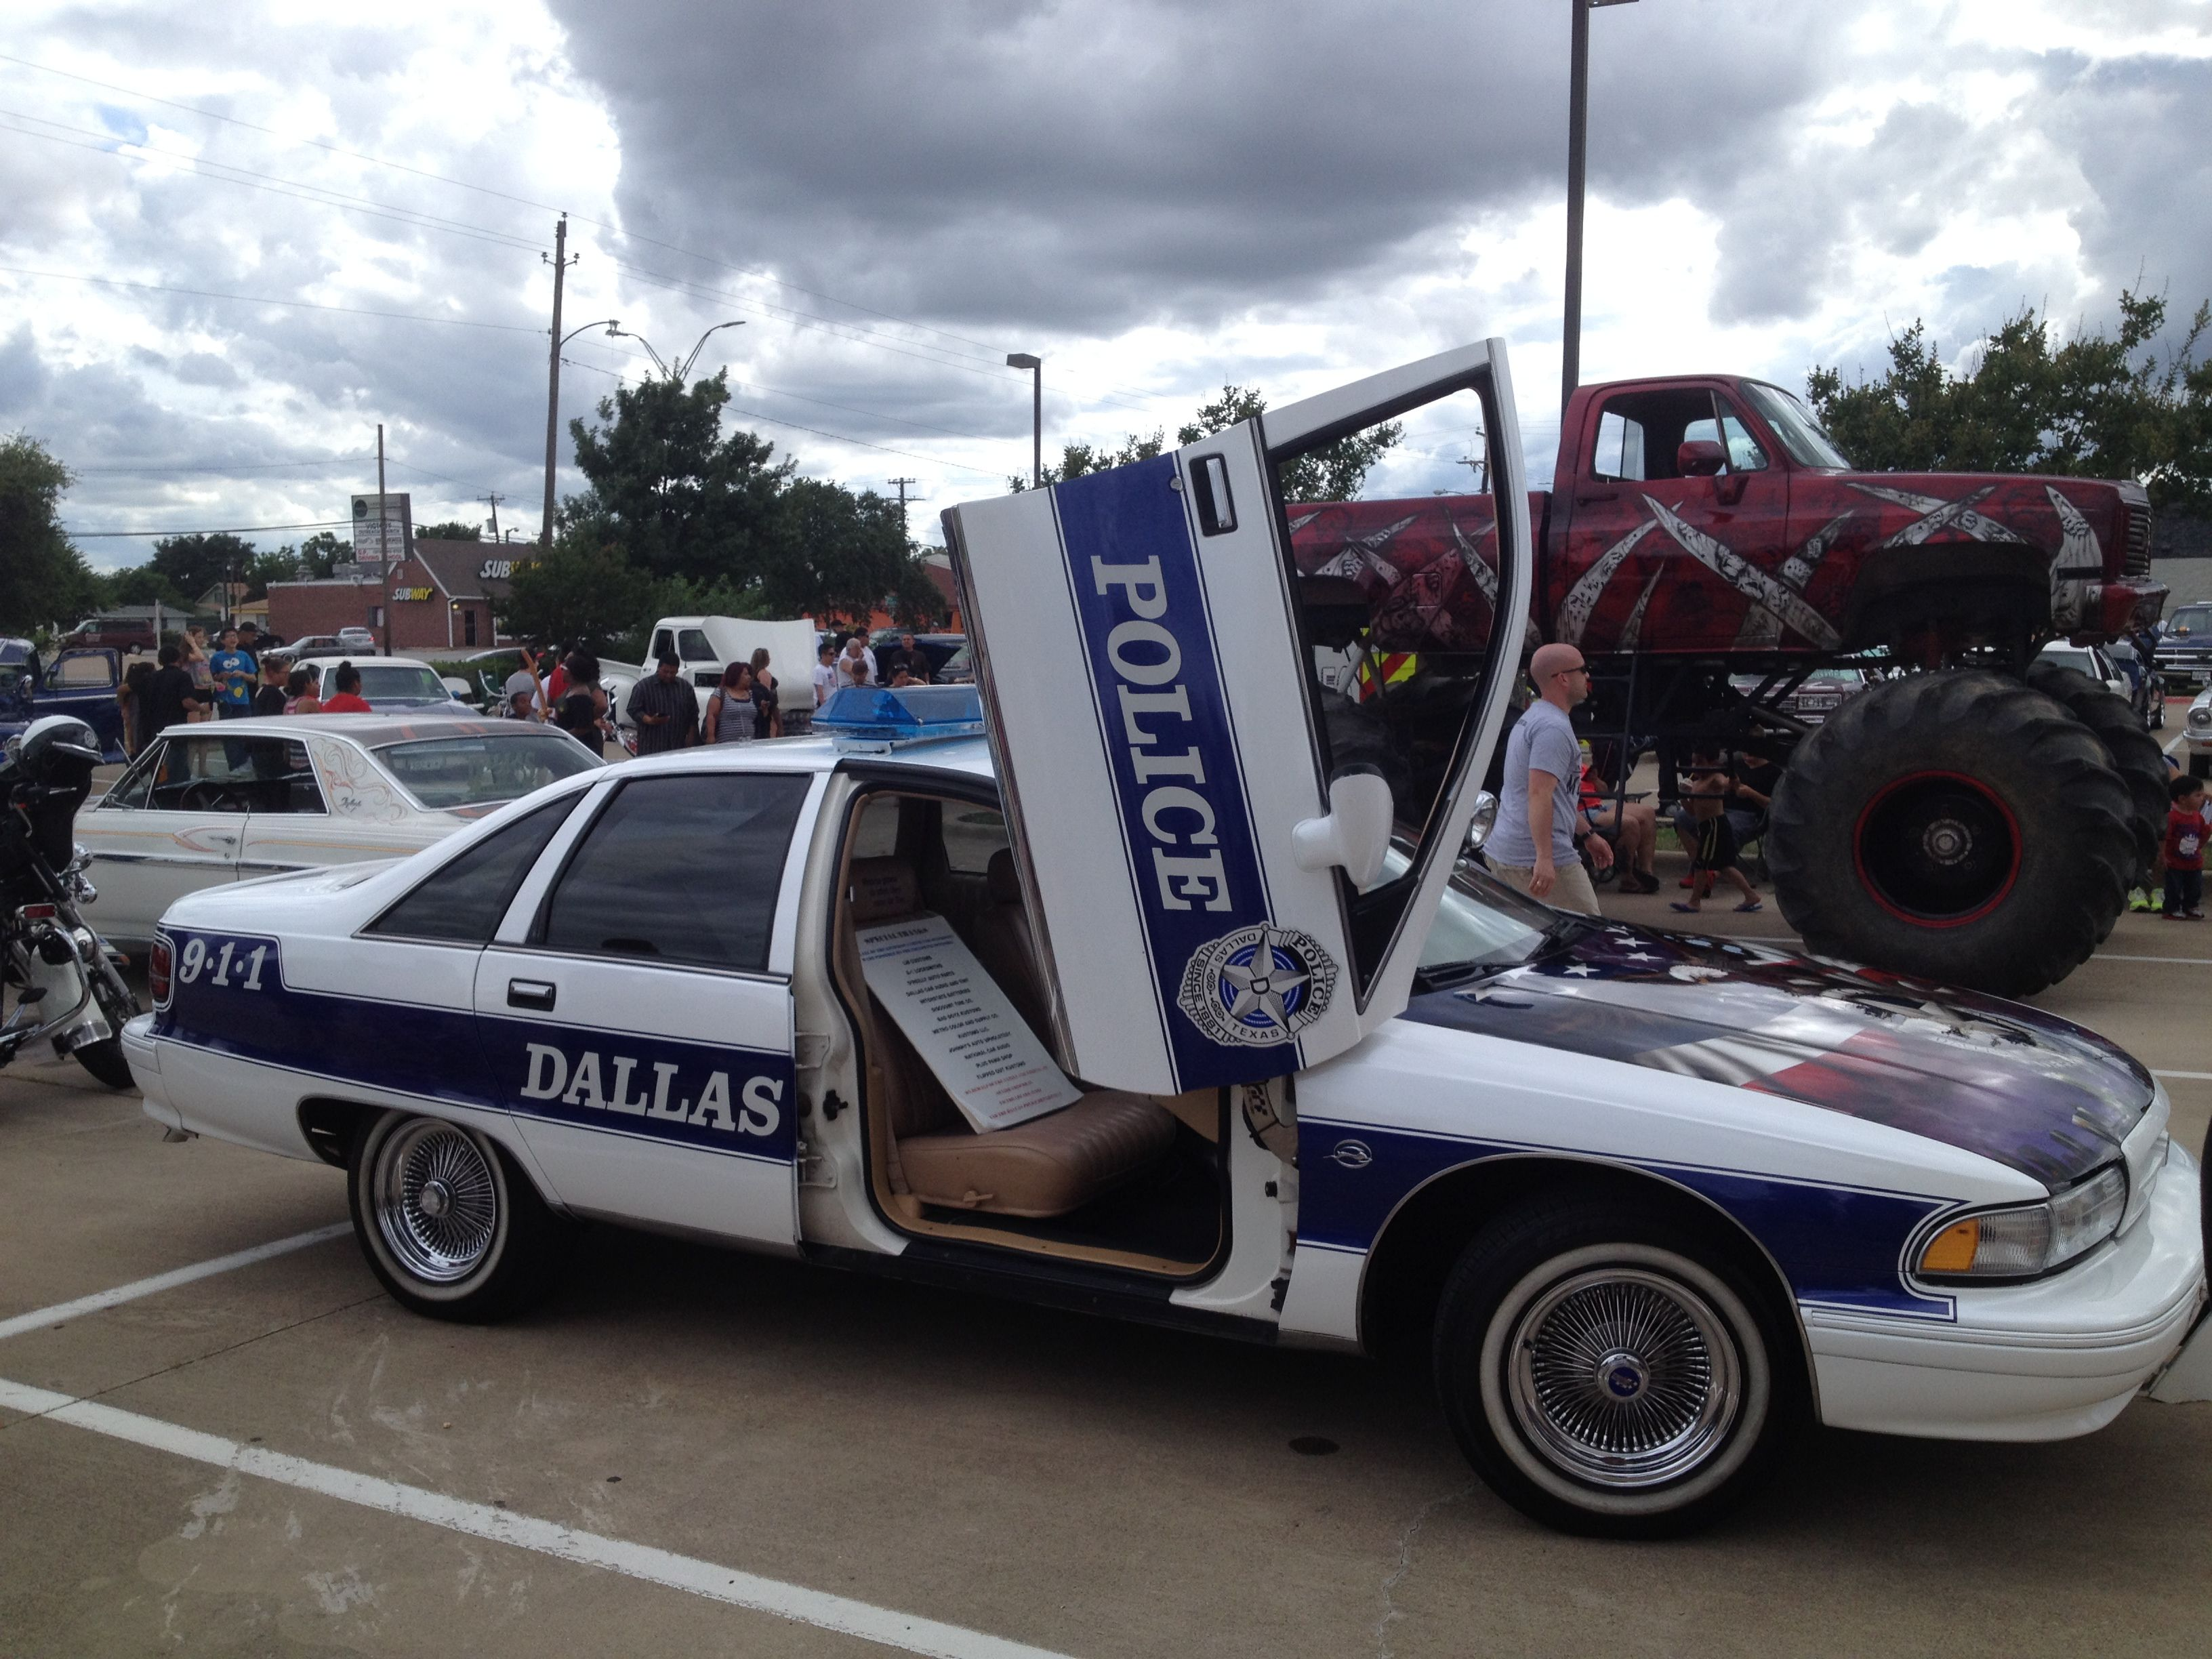 Dallas PD Had A Lowrider Patrol Car This Was At The Car Show At - Lowrider car show dallas